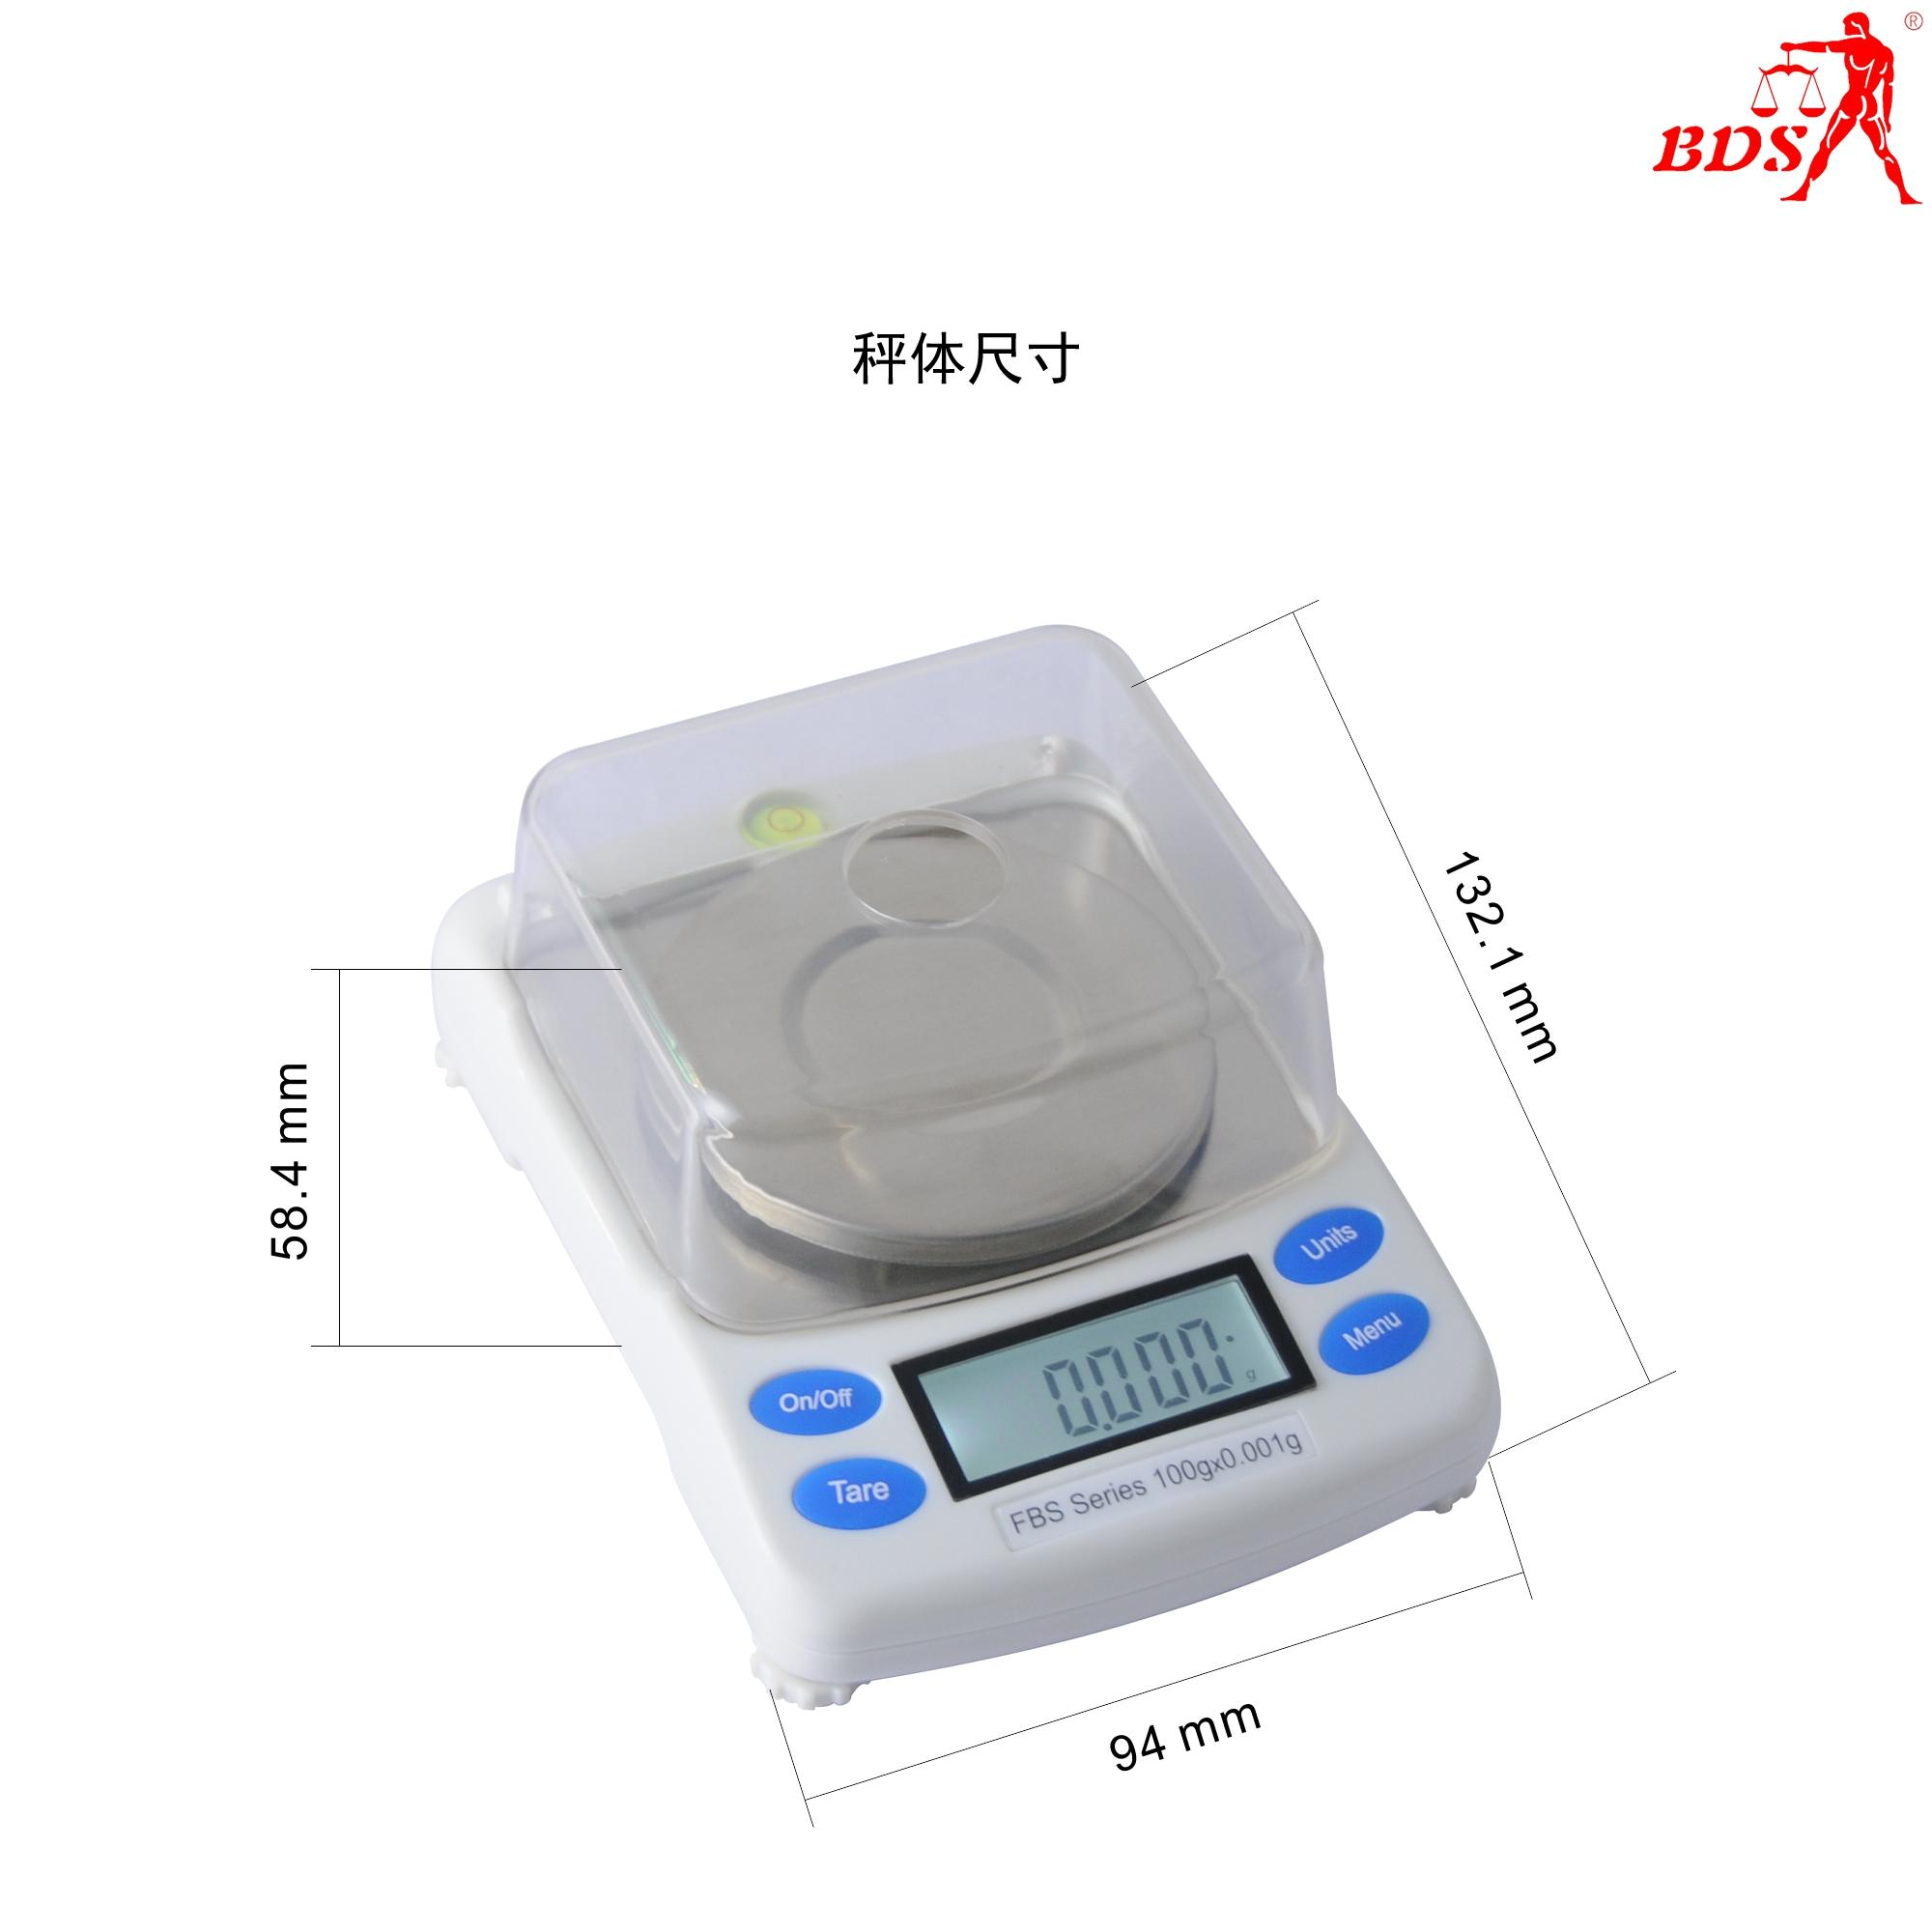 BDS Jewelry diamond scale electronic scale portable scale manufacturer  4